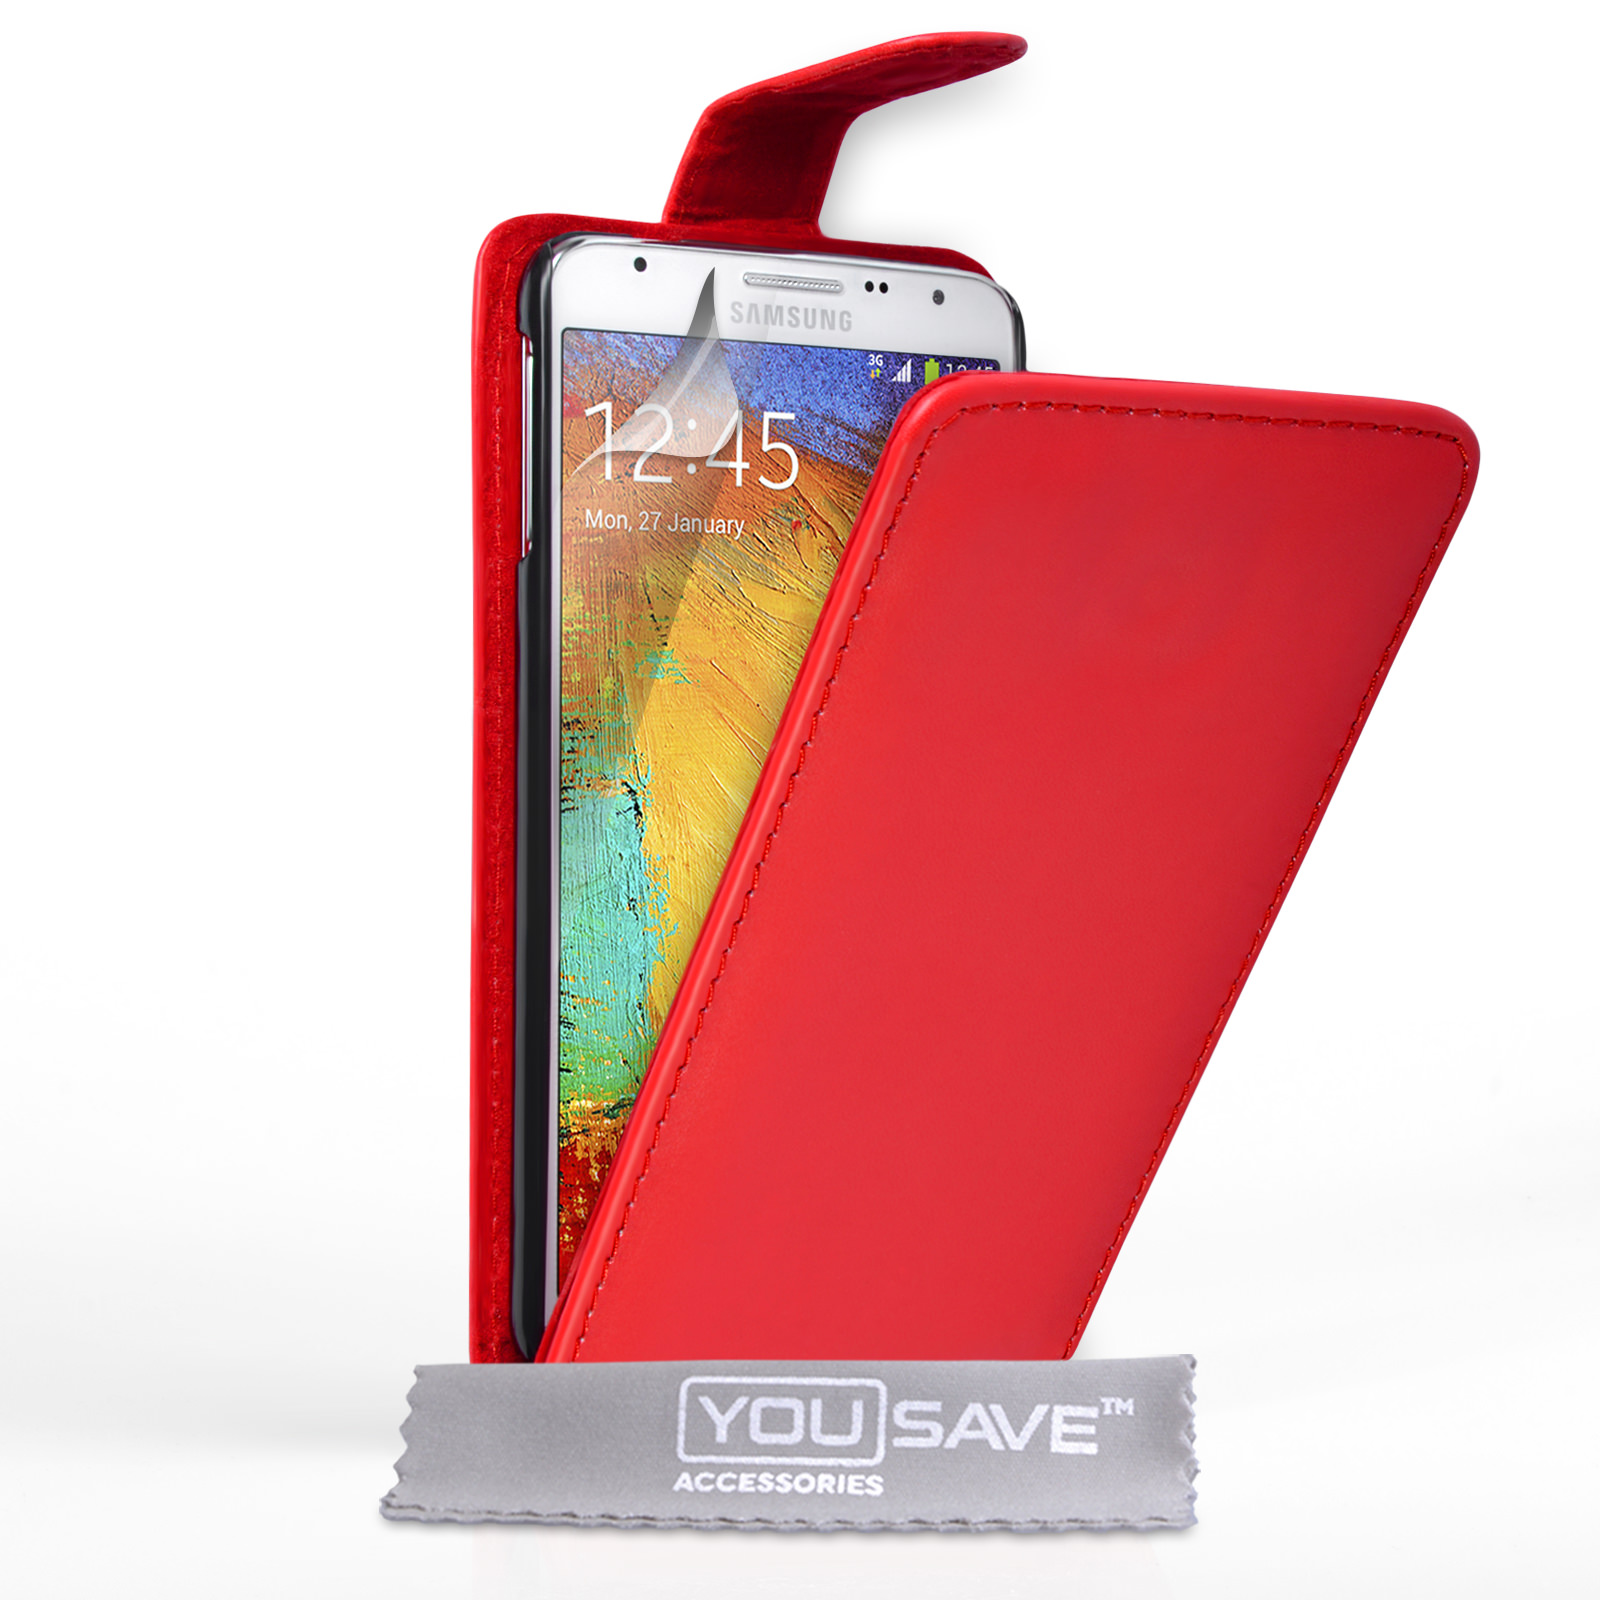 YouSave Samsung Galaxy Note 3 Neo Leather-Effect Flip Case - Red